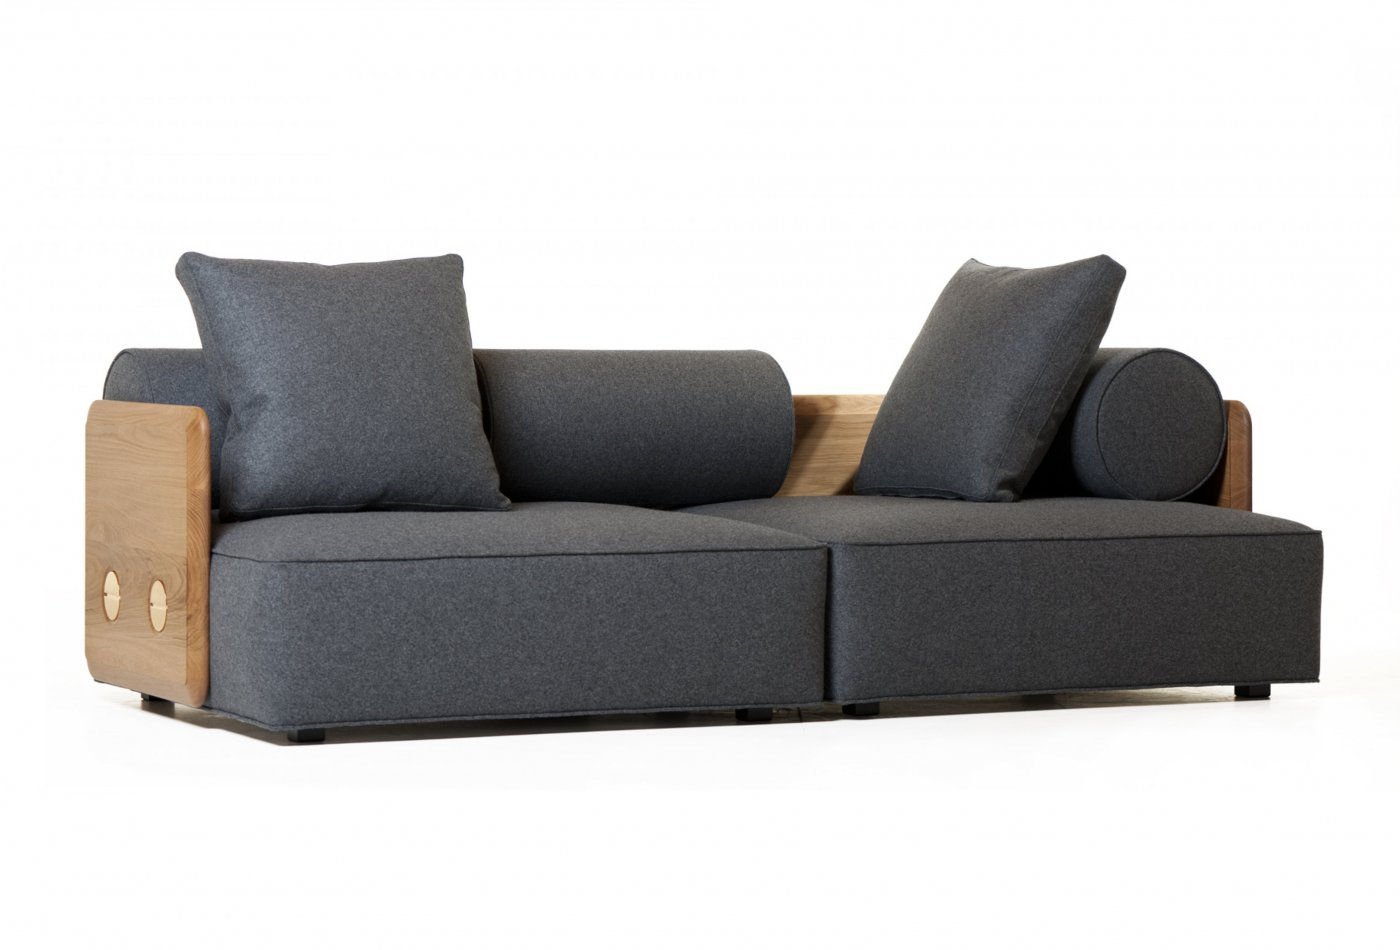 Deco Sofa profile in Danish oiled oak and wool